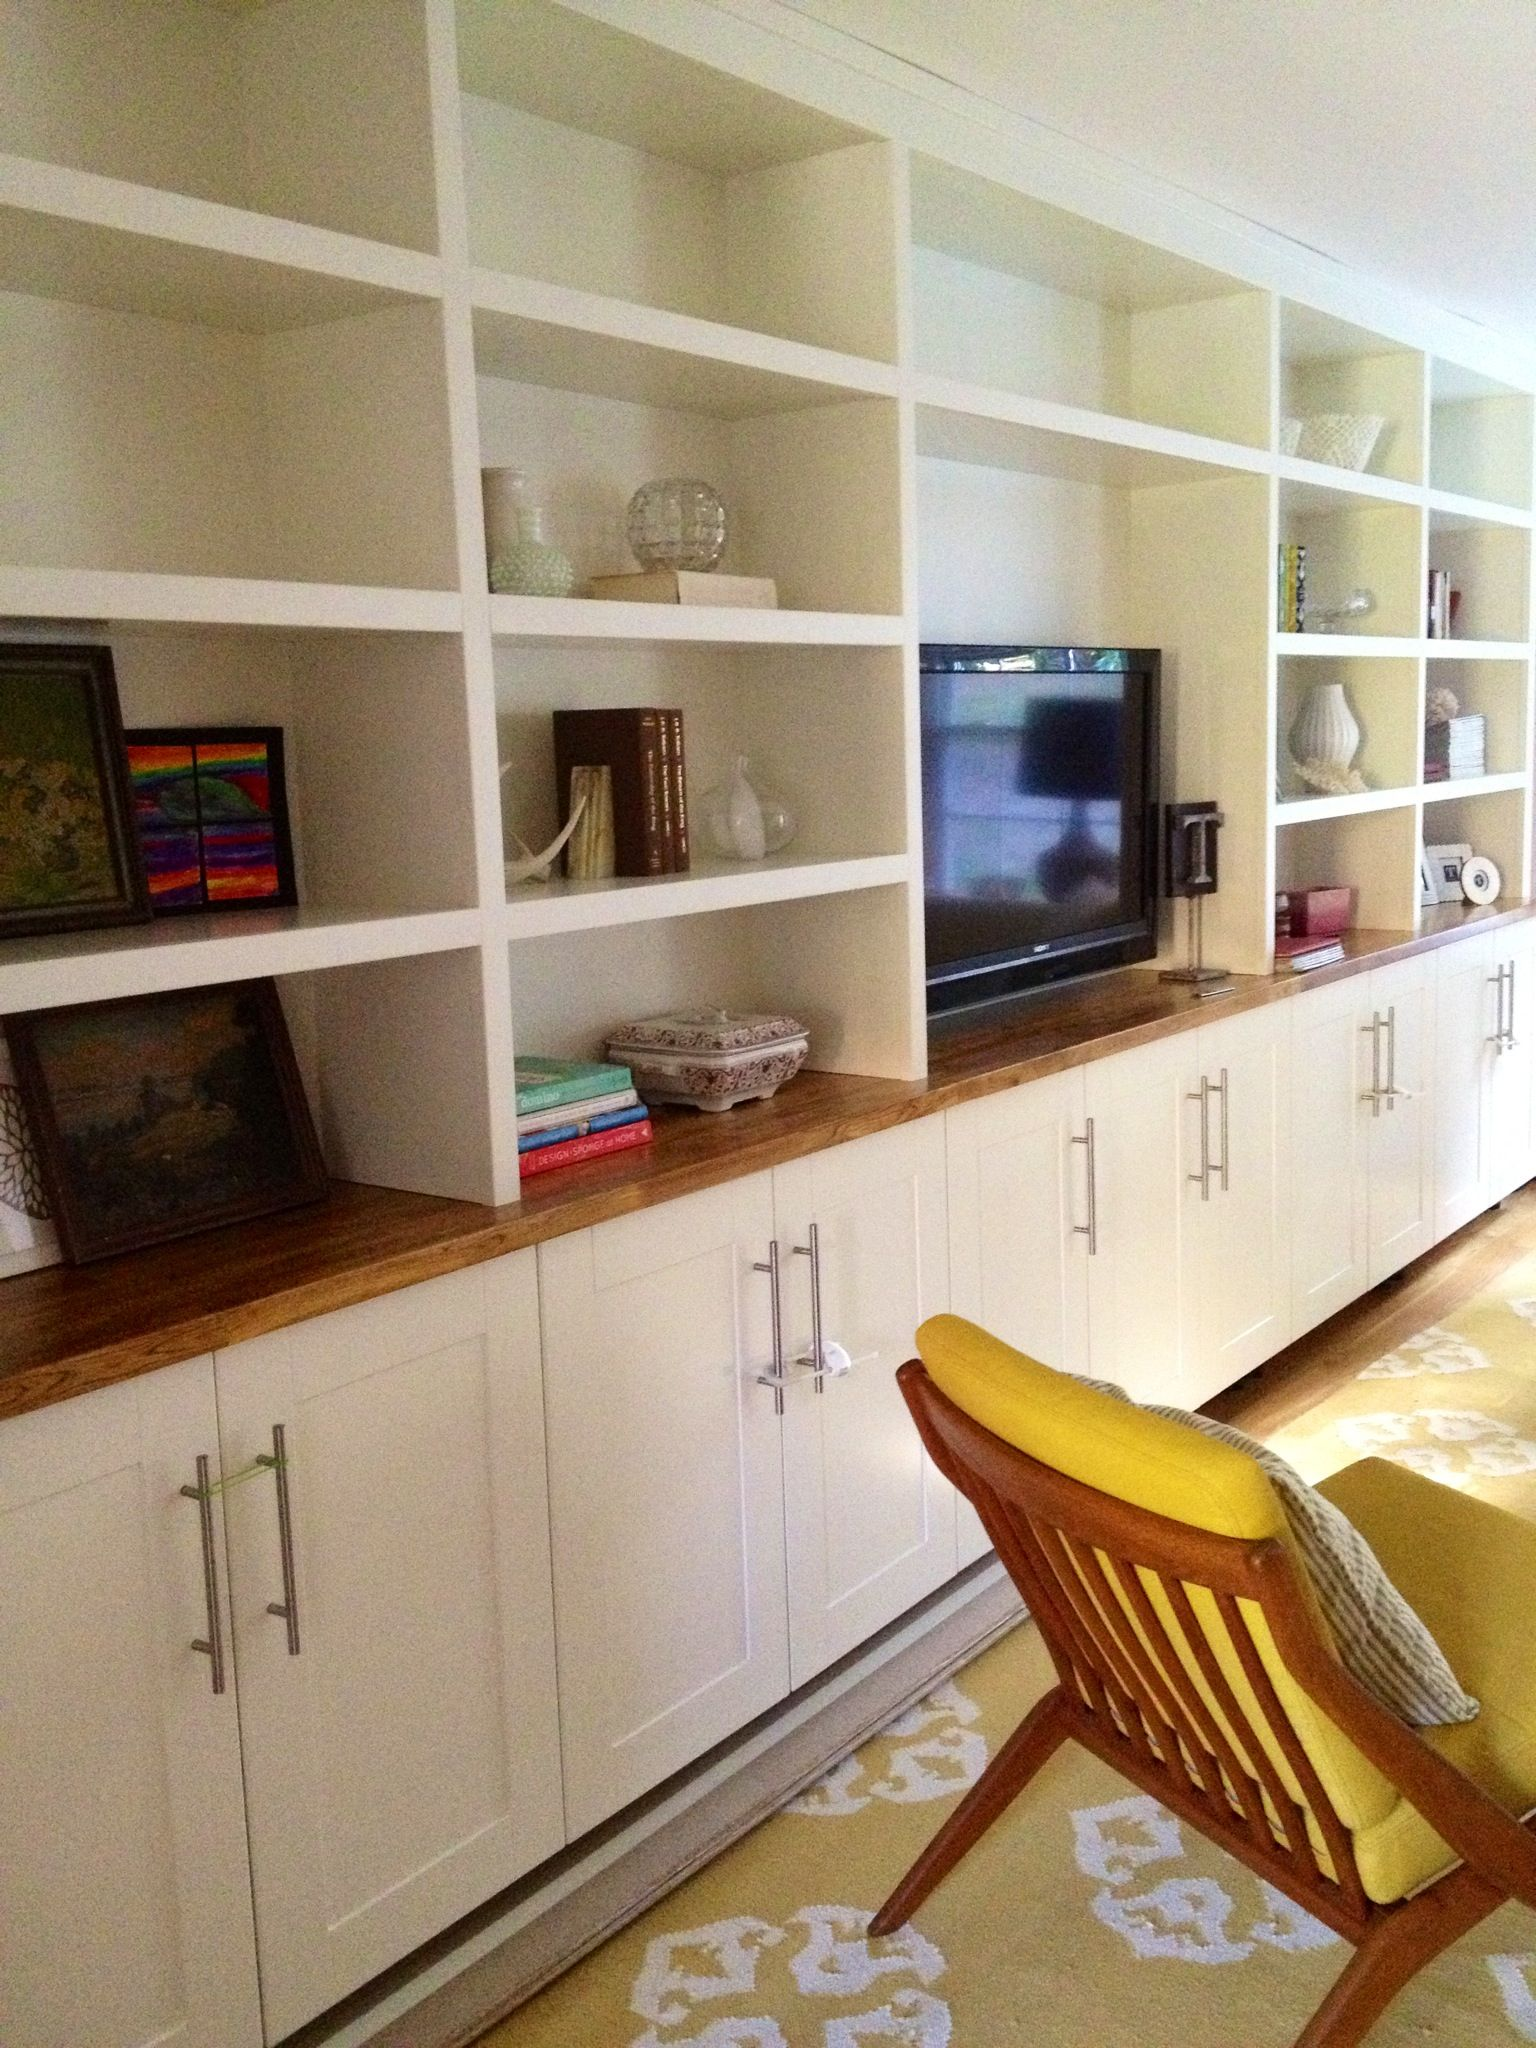 Built Ins Ikea Adel Cabinets Below Custom Shelving On Top With